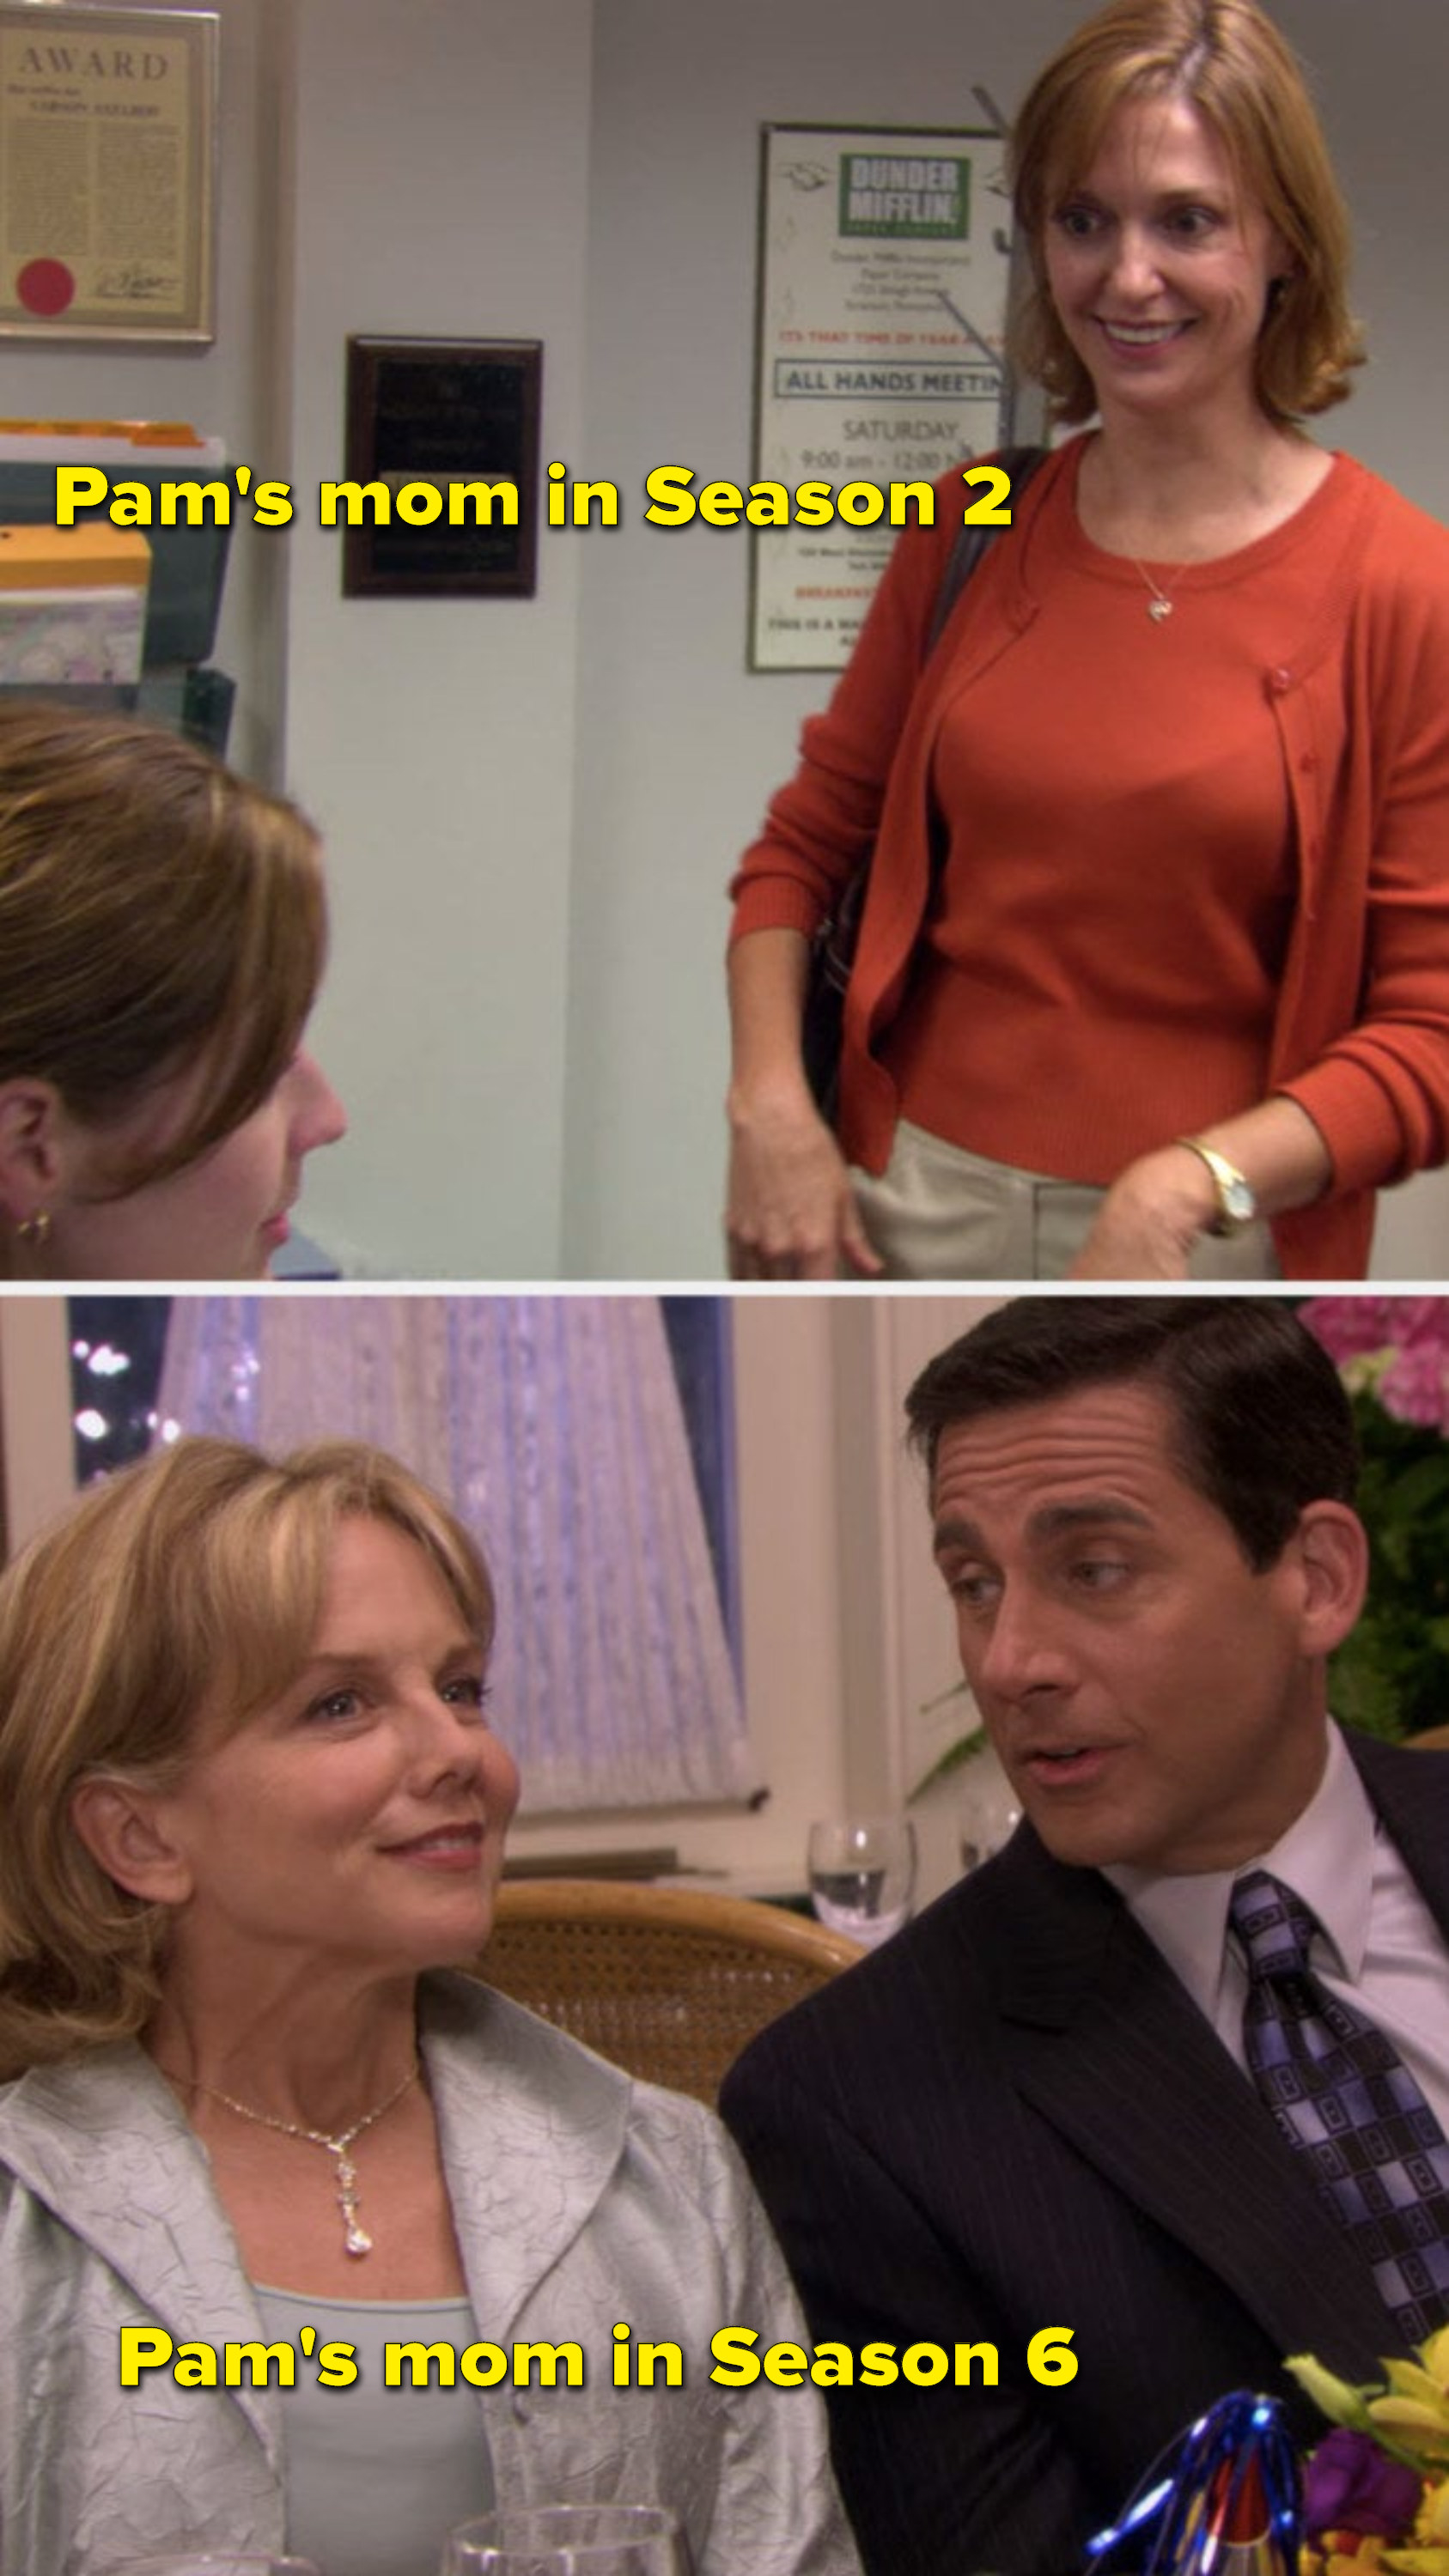 Pam's mom in Season 2 and an entirely different actor playing Pam's mom in Season 6